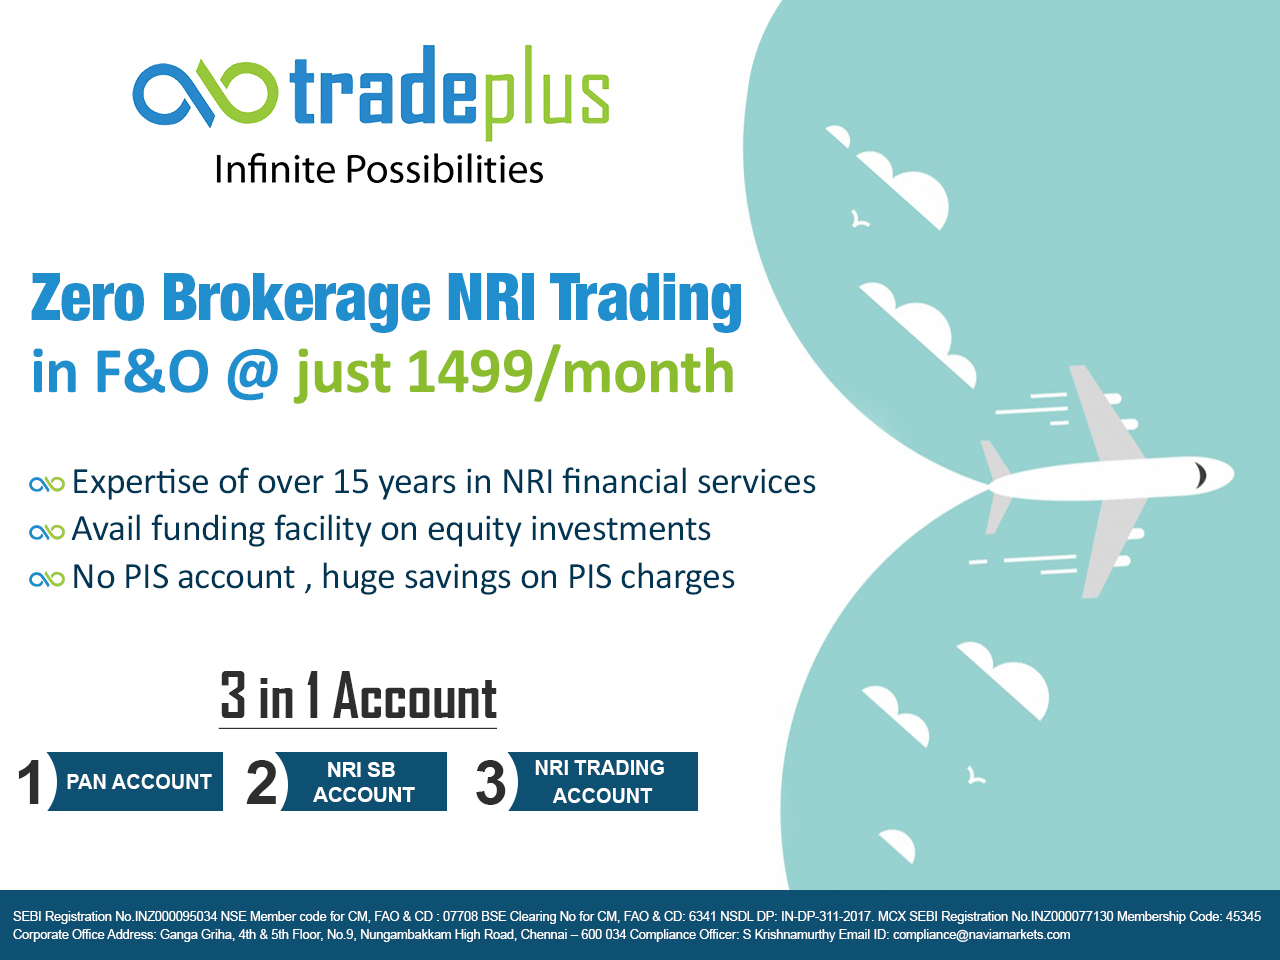 NRI Trading Can a Foreigner invest in Indian Stock market, if so, is it easy and  worthy?